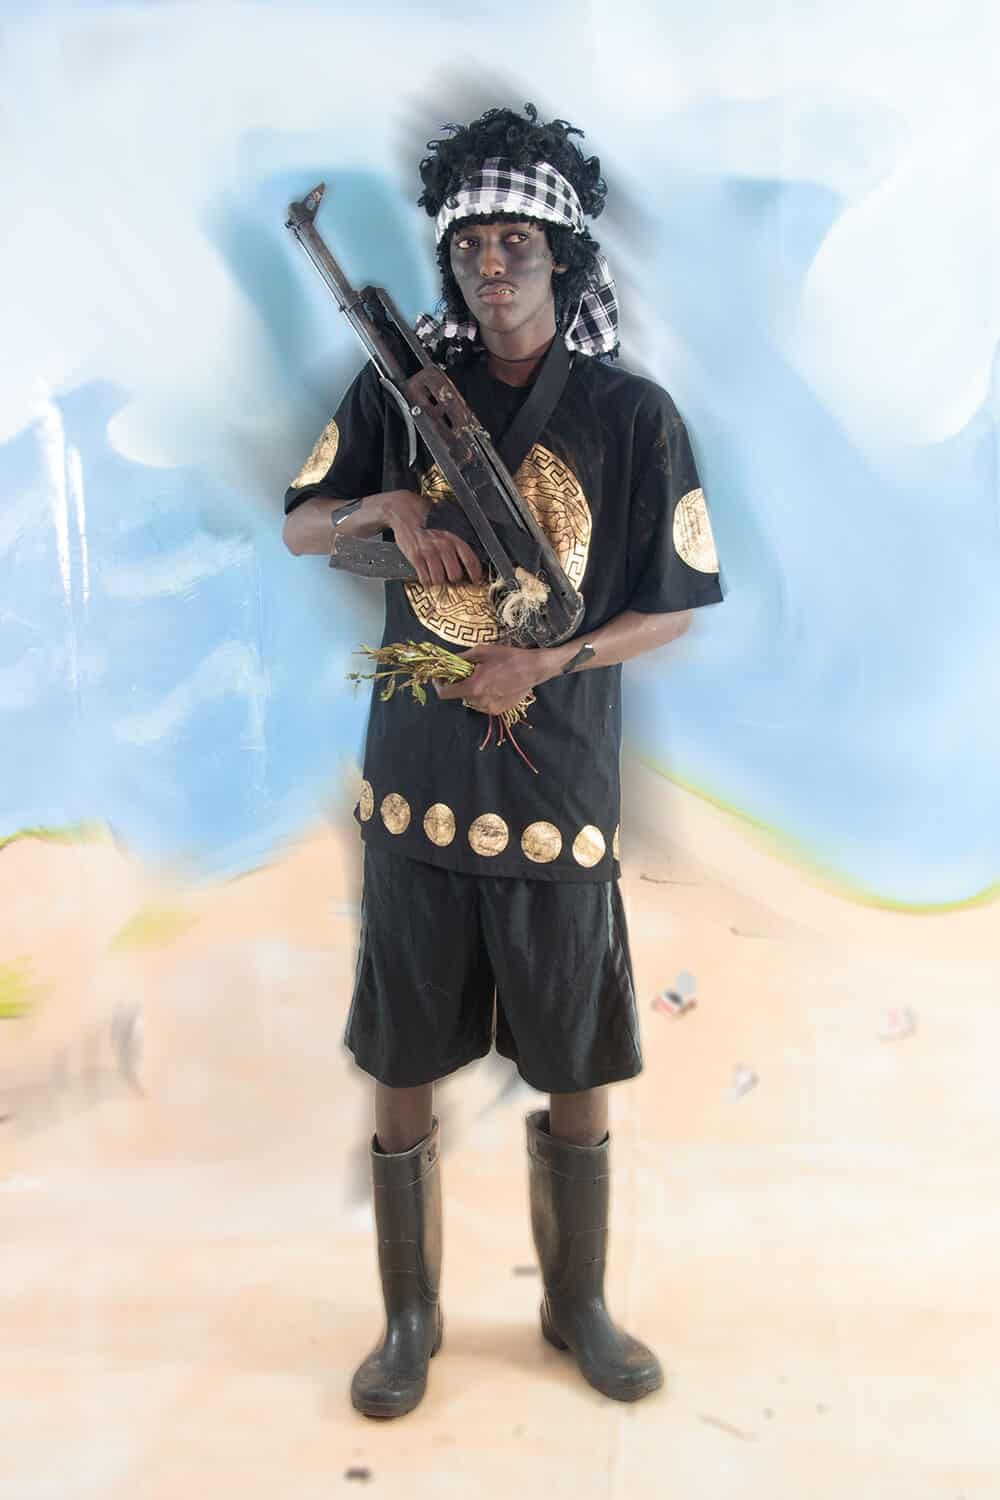 Jan Hoek, The Real Somali Pirates -Ahmali. Courtesy of the artist.